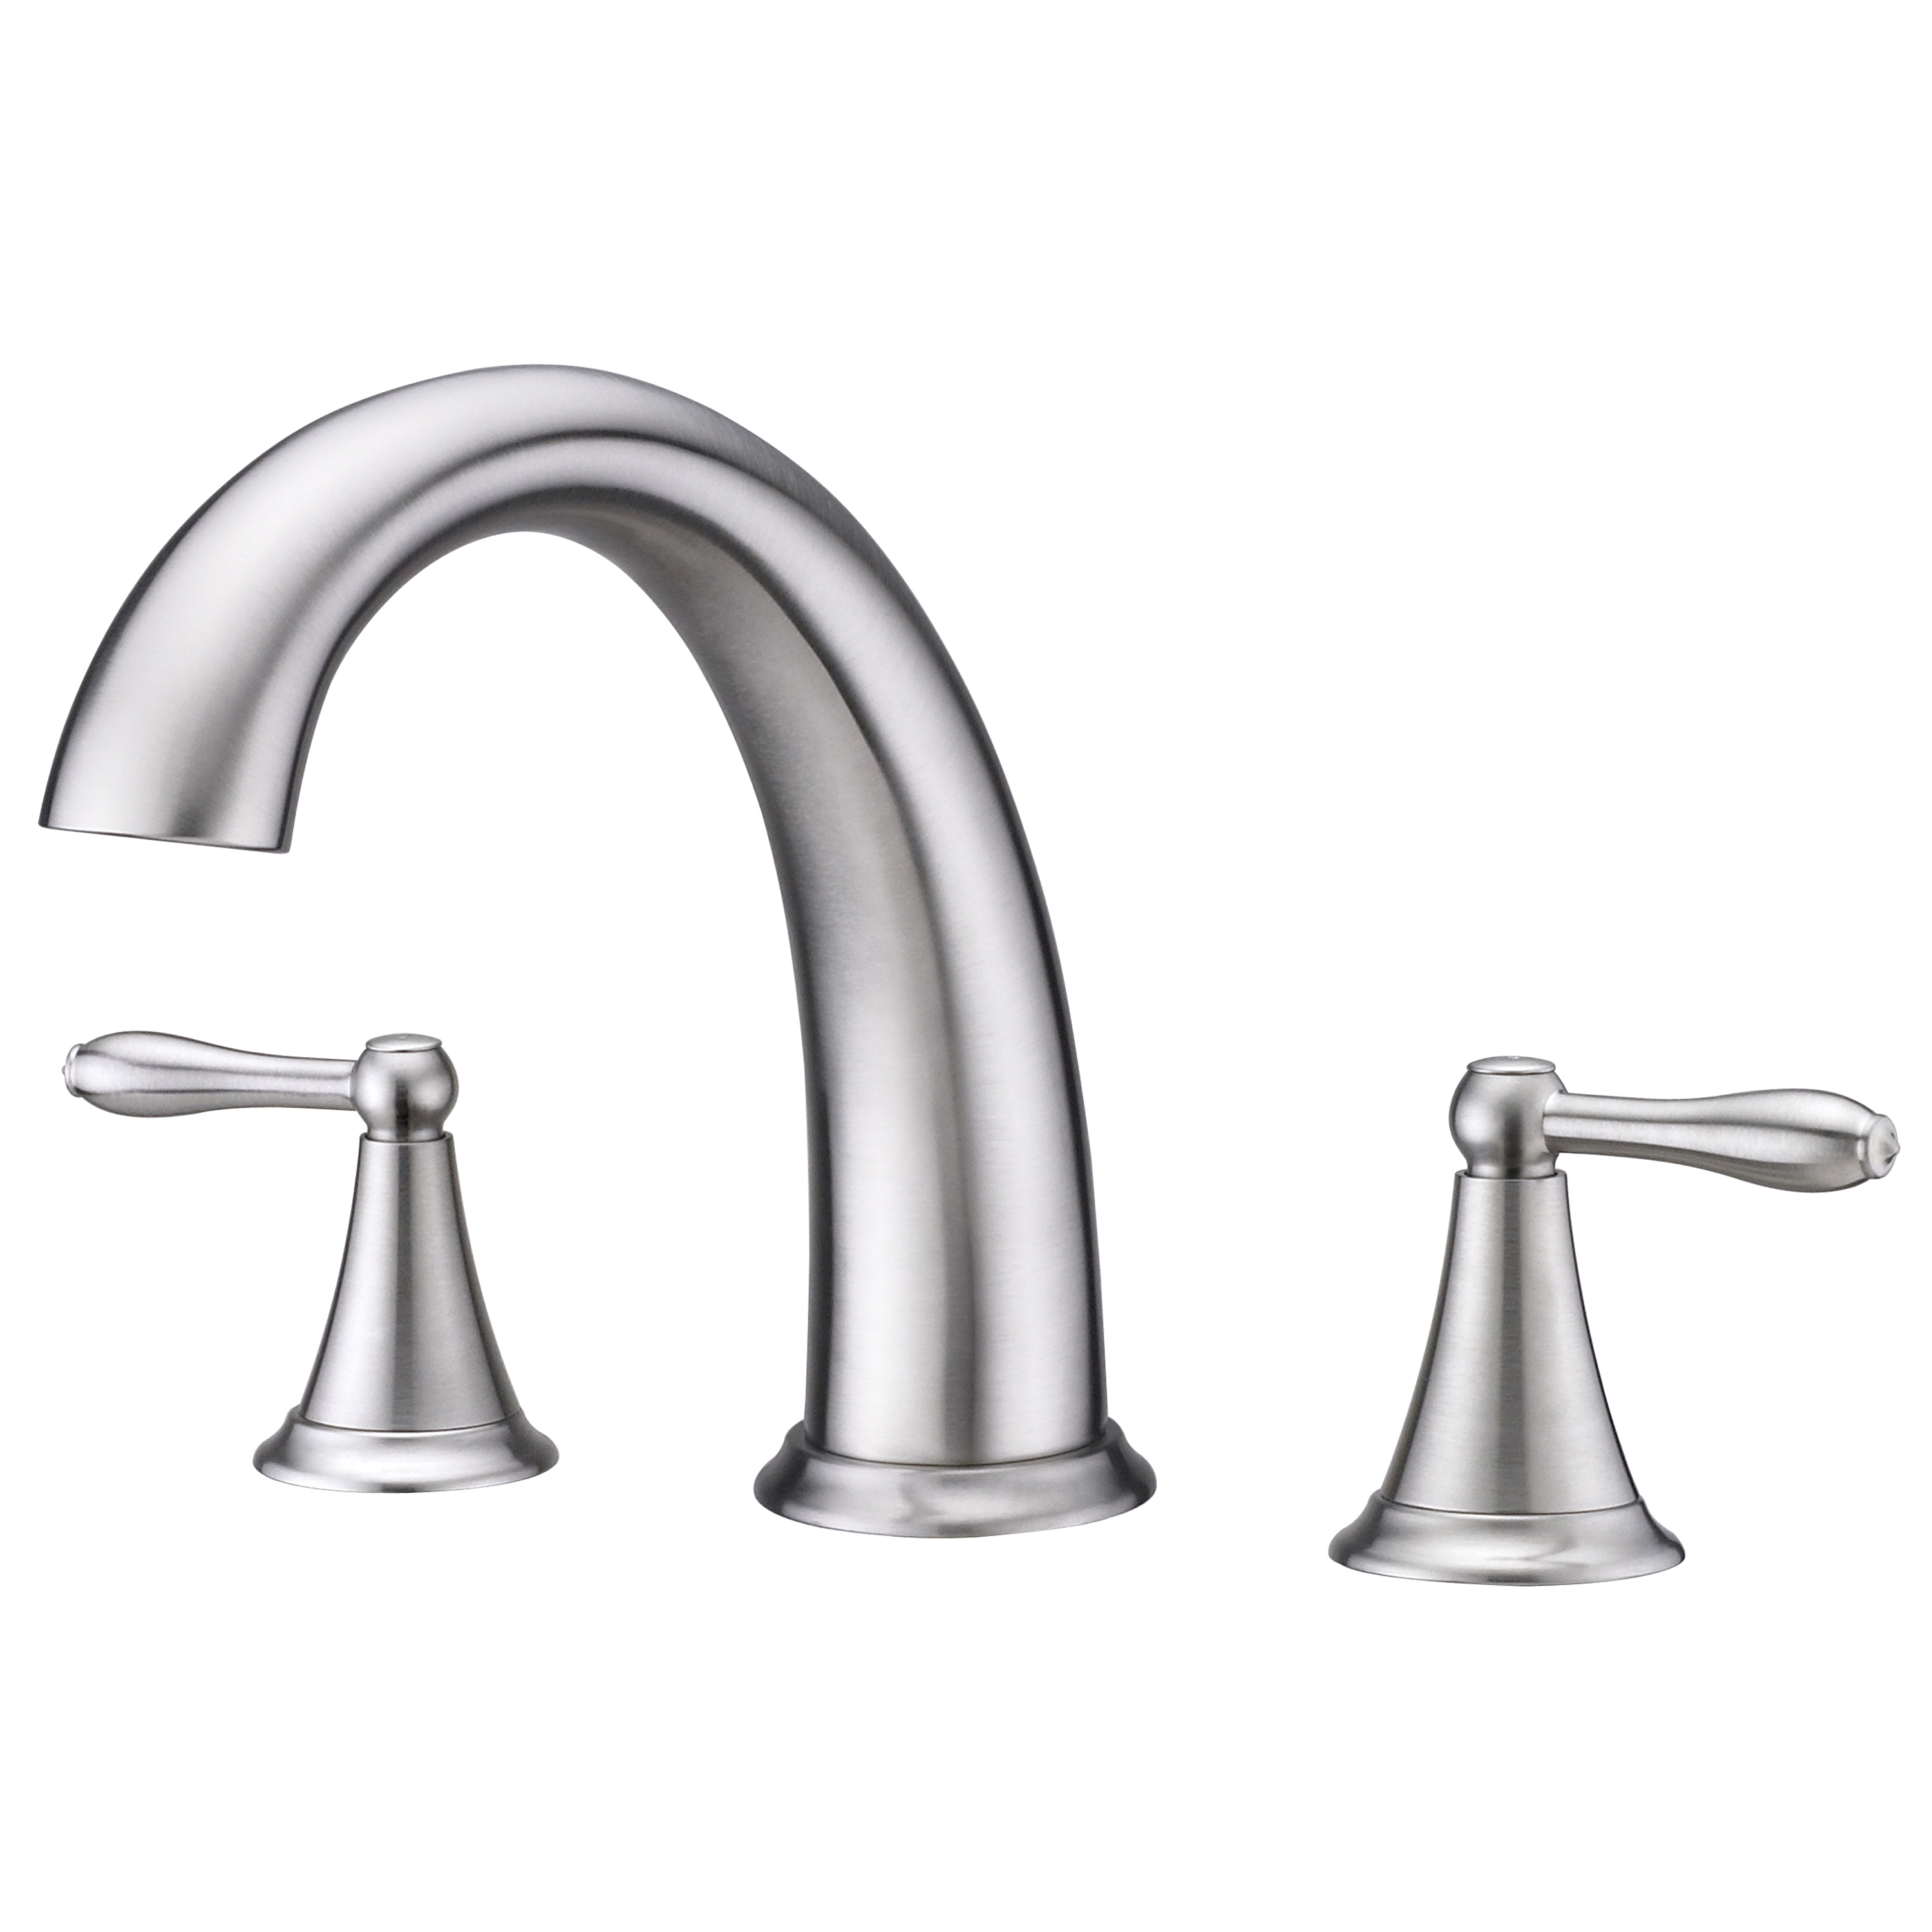 """Contour Collection"" Roman Tub Faucet"